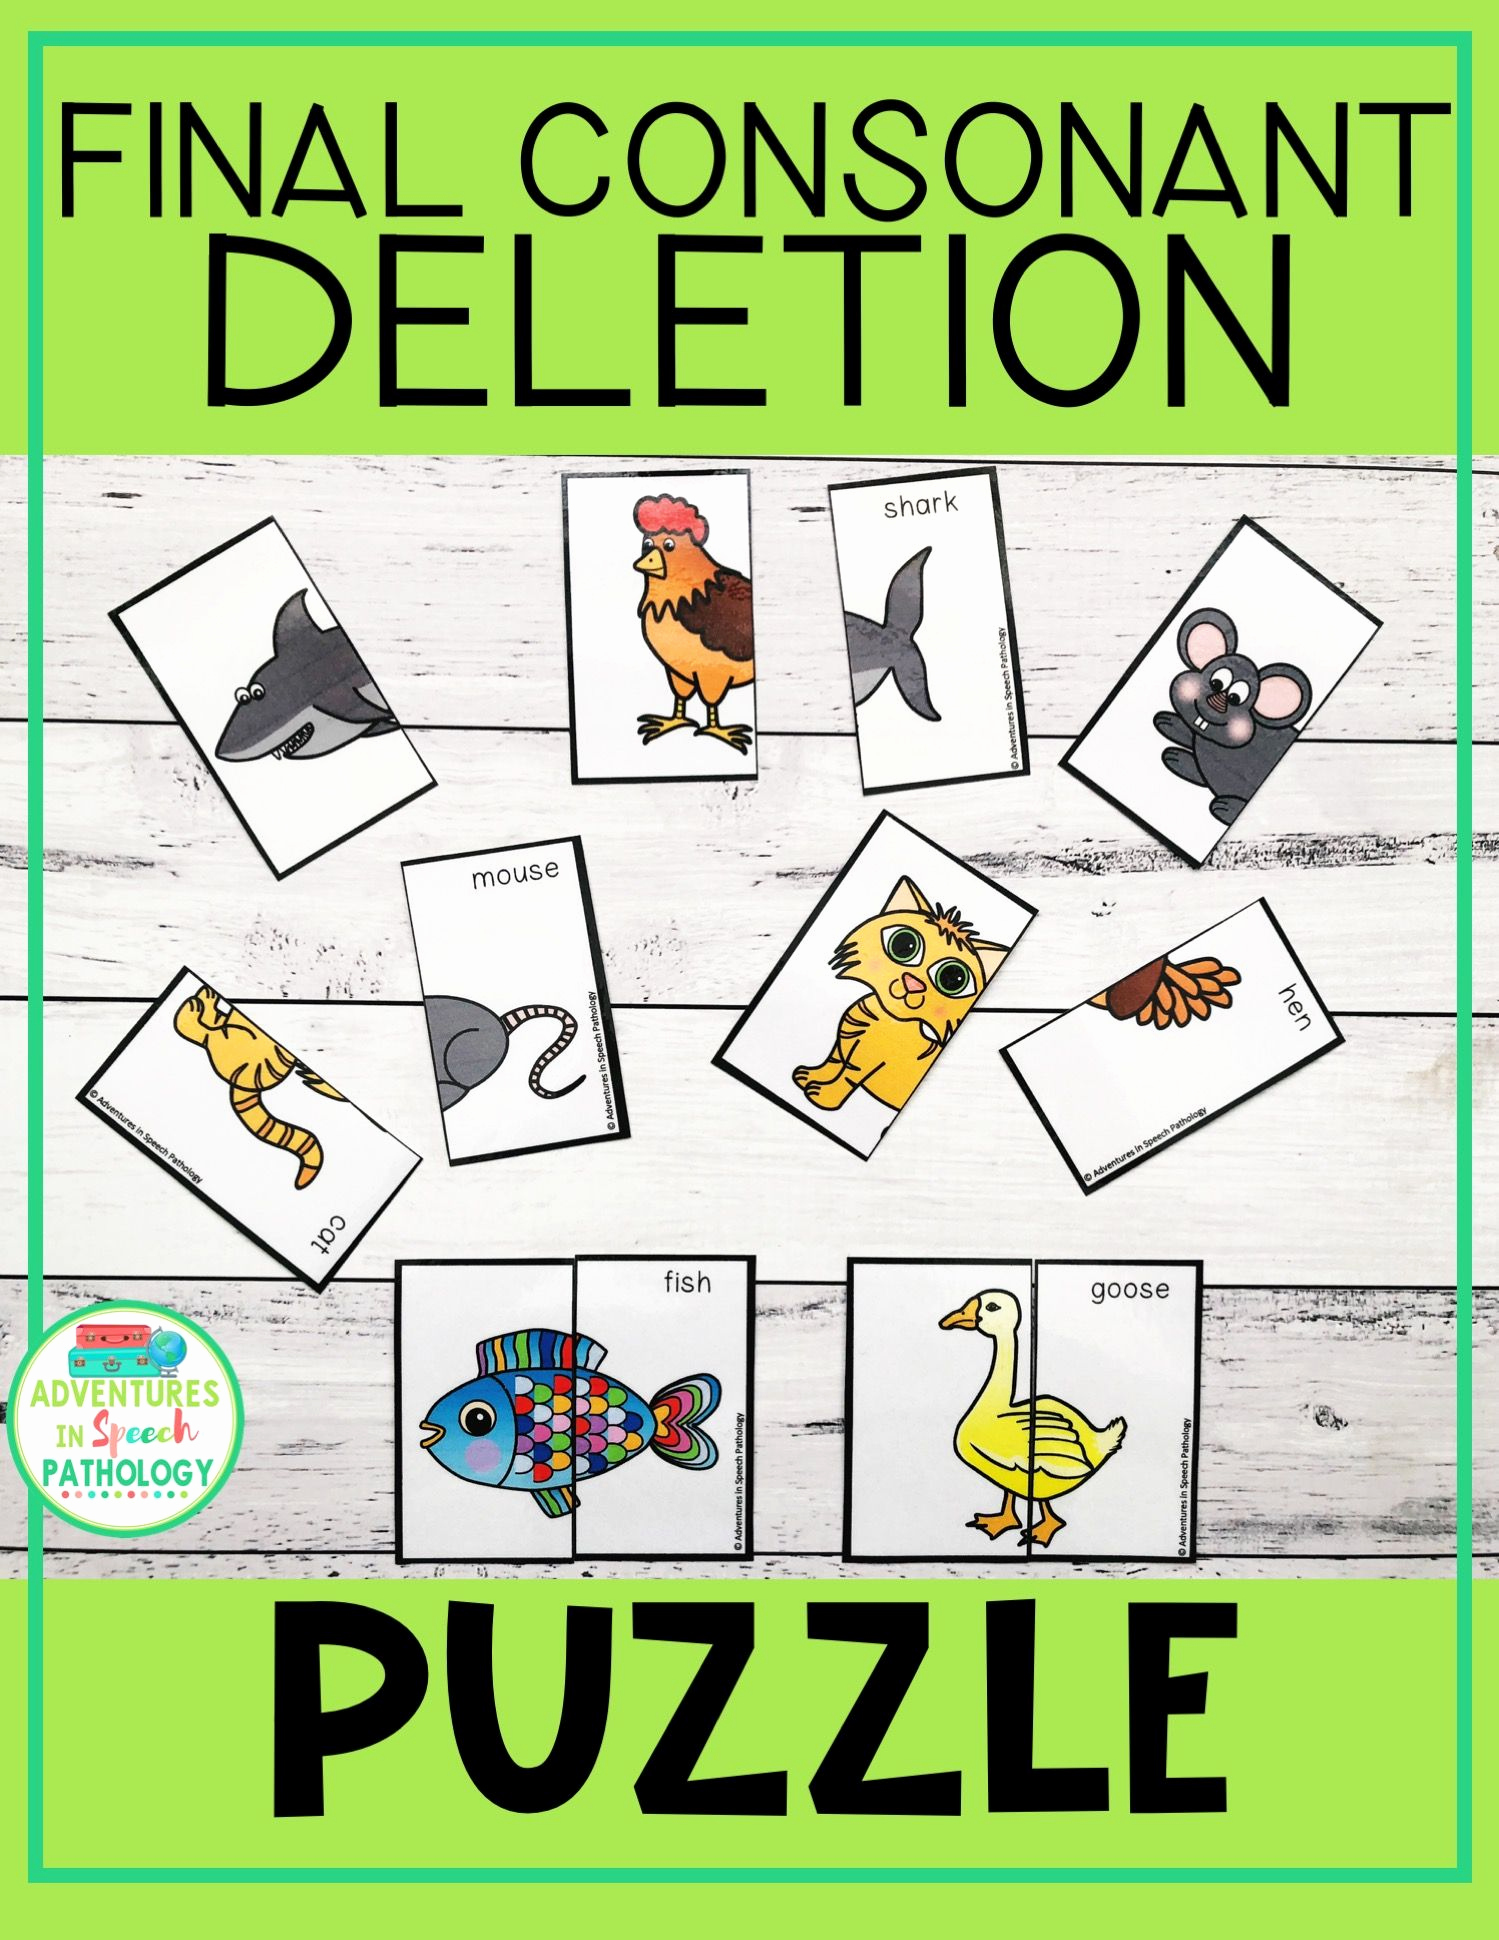 Final Consonant Deletion Worksheet Beautiful How to Engage Little Hands with Final Consonant Deletion